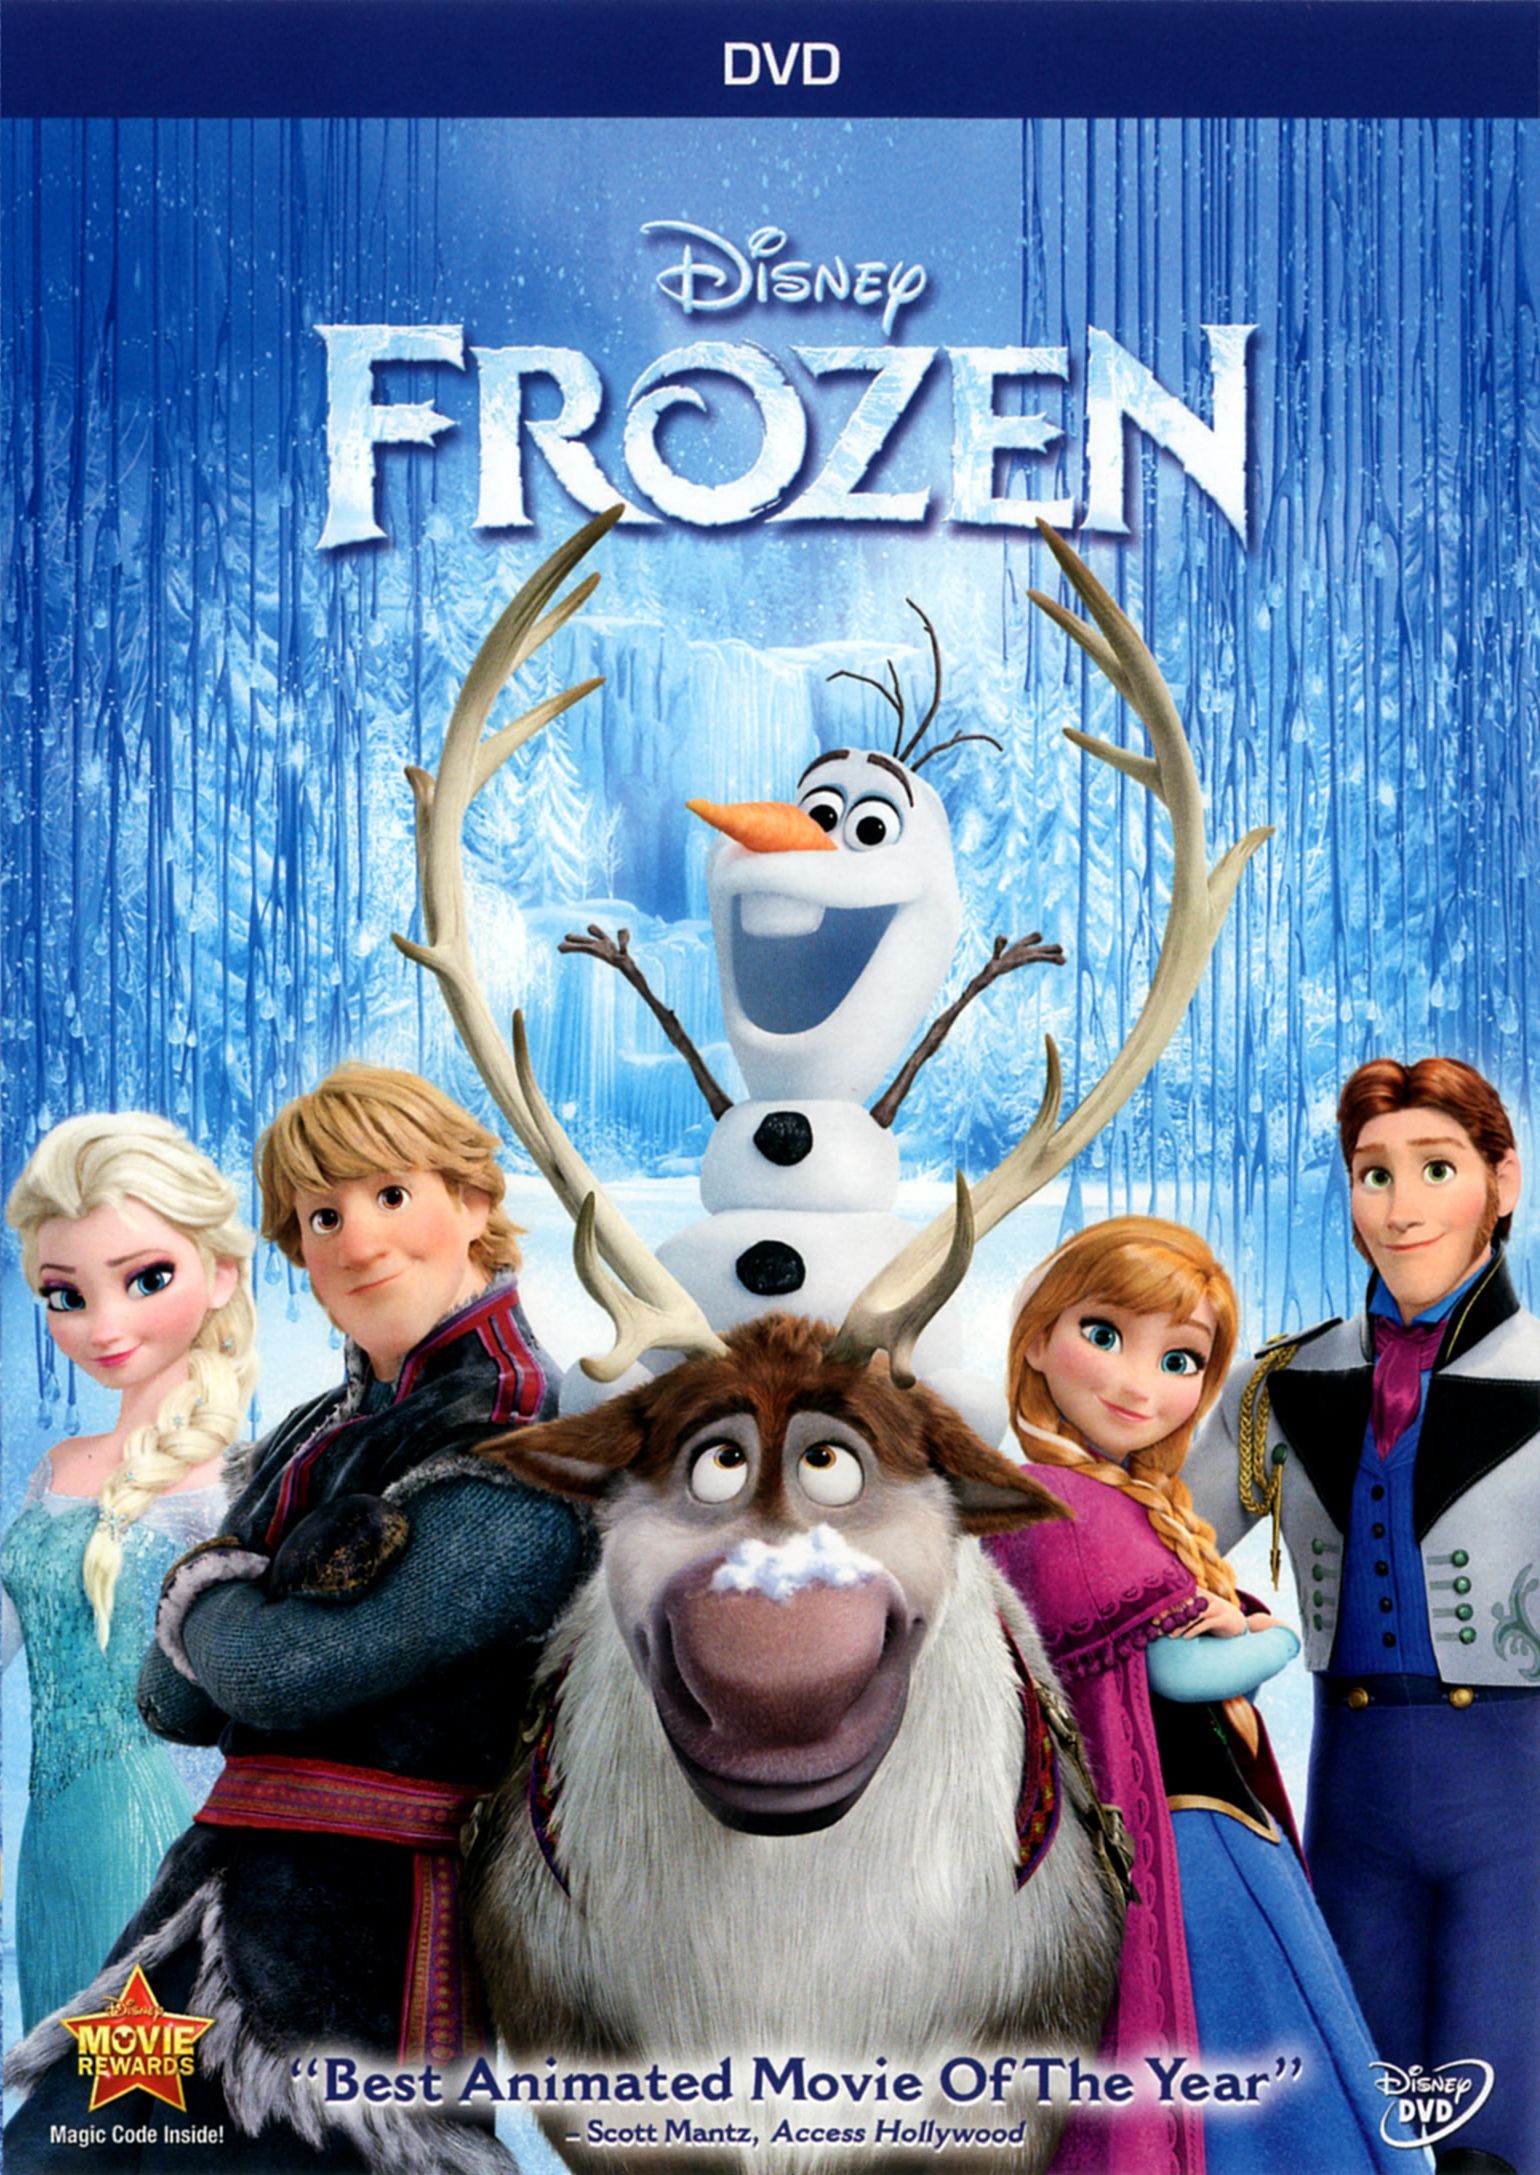 Frozen (video)